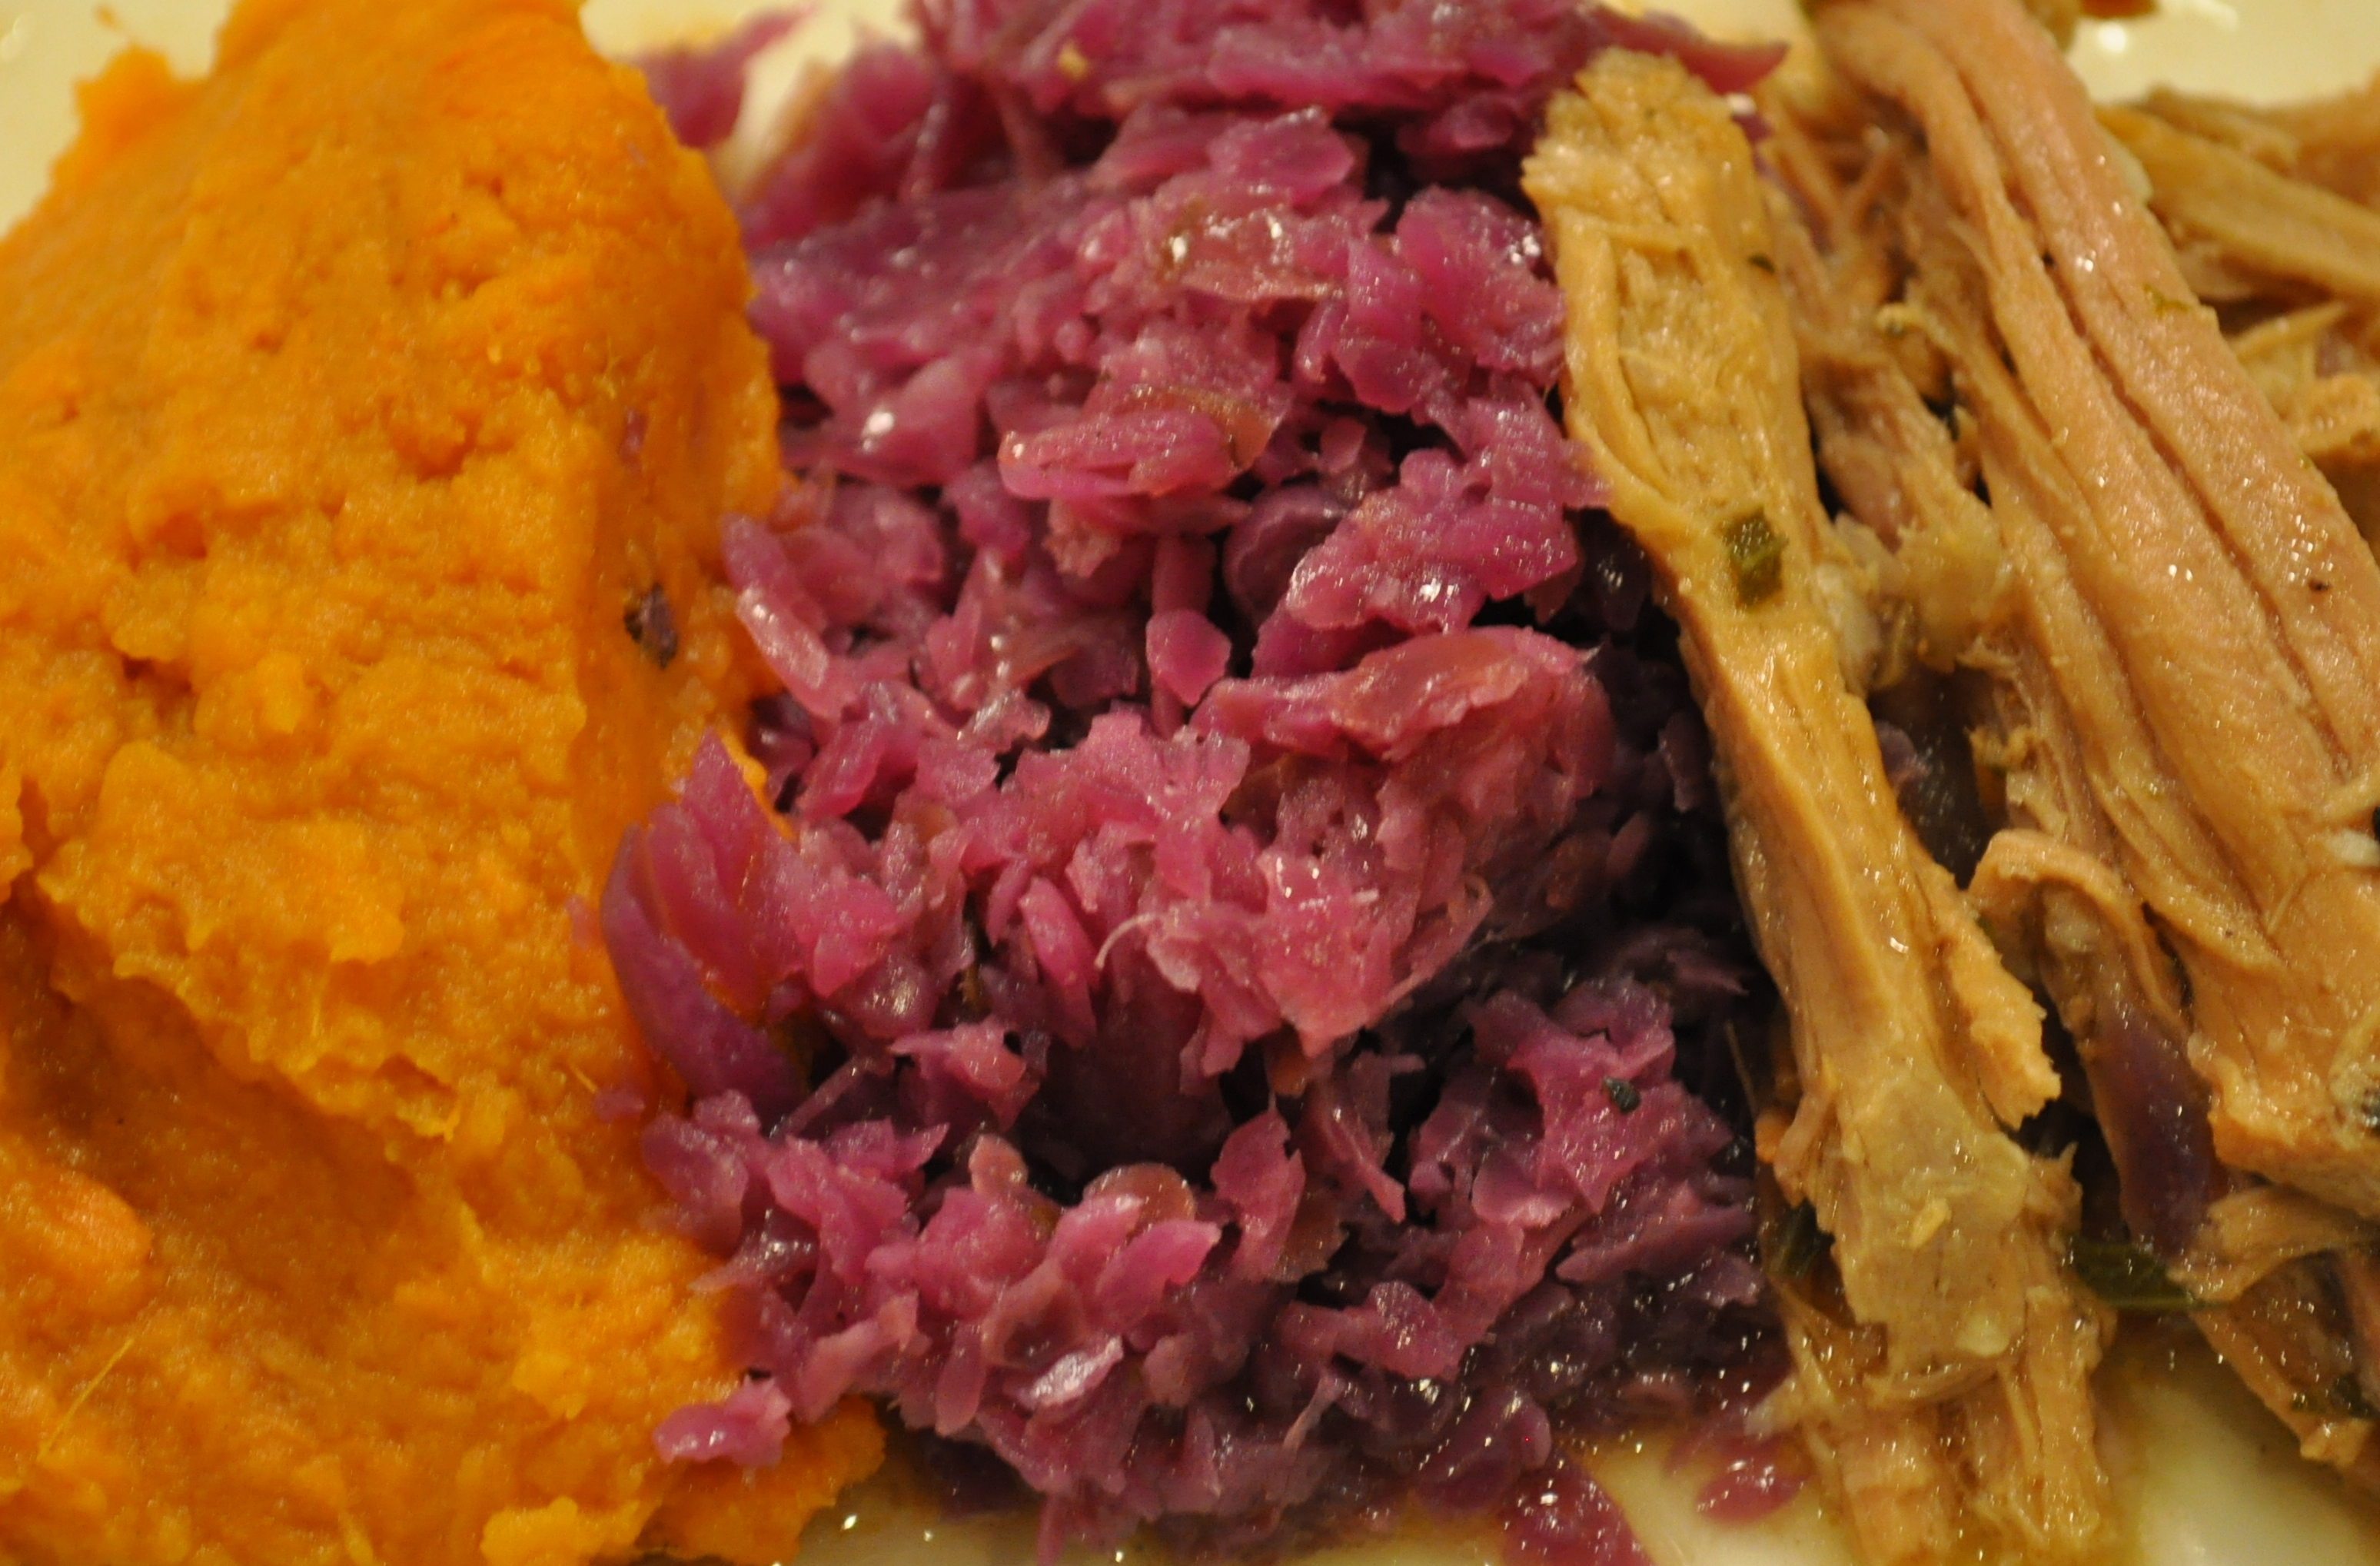 Braised red cabbage with mashed sweet potatoes and pulled pork